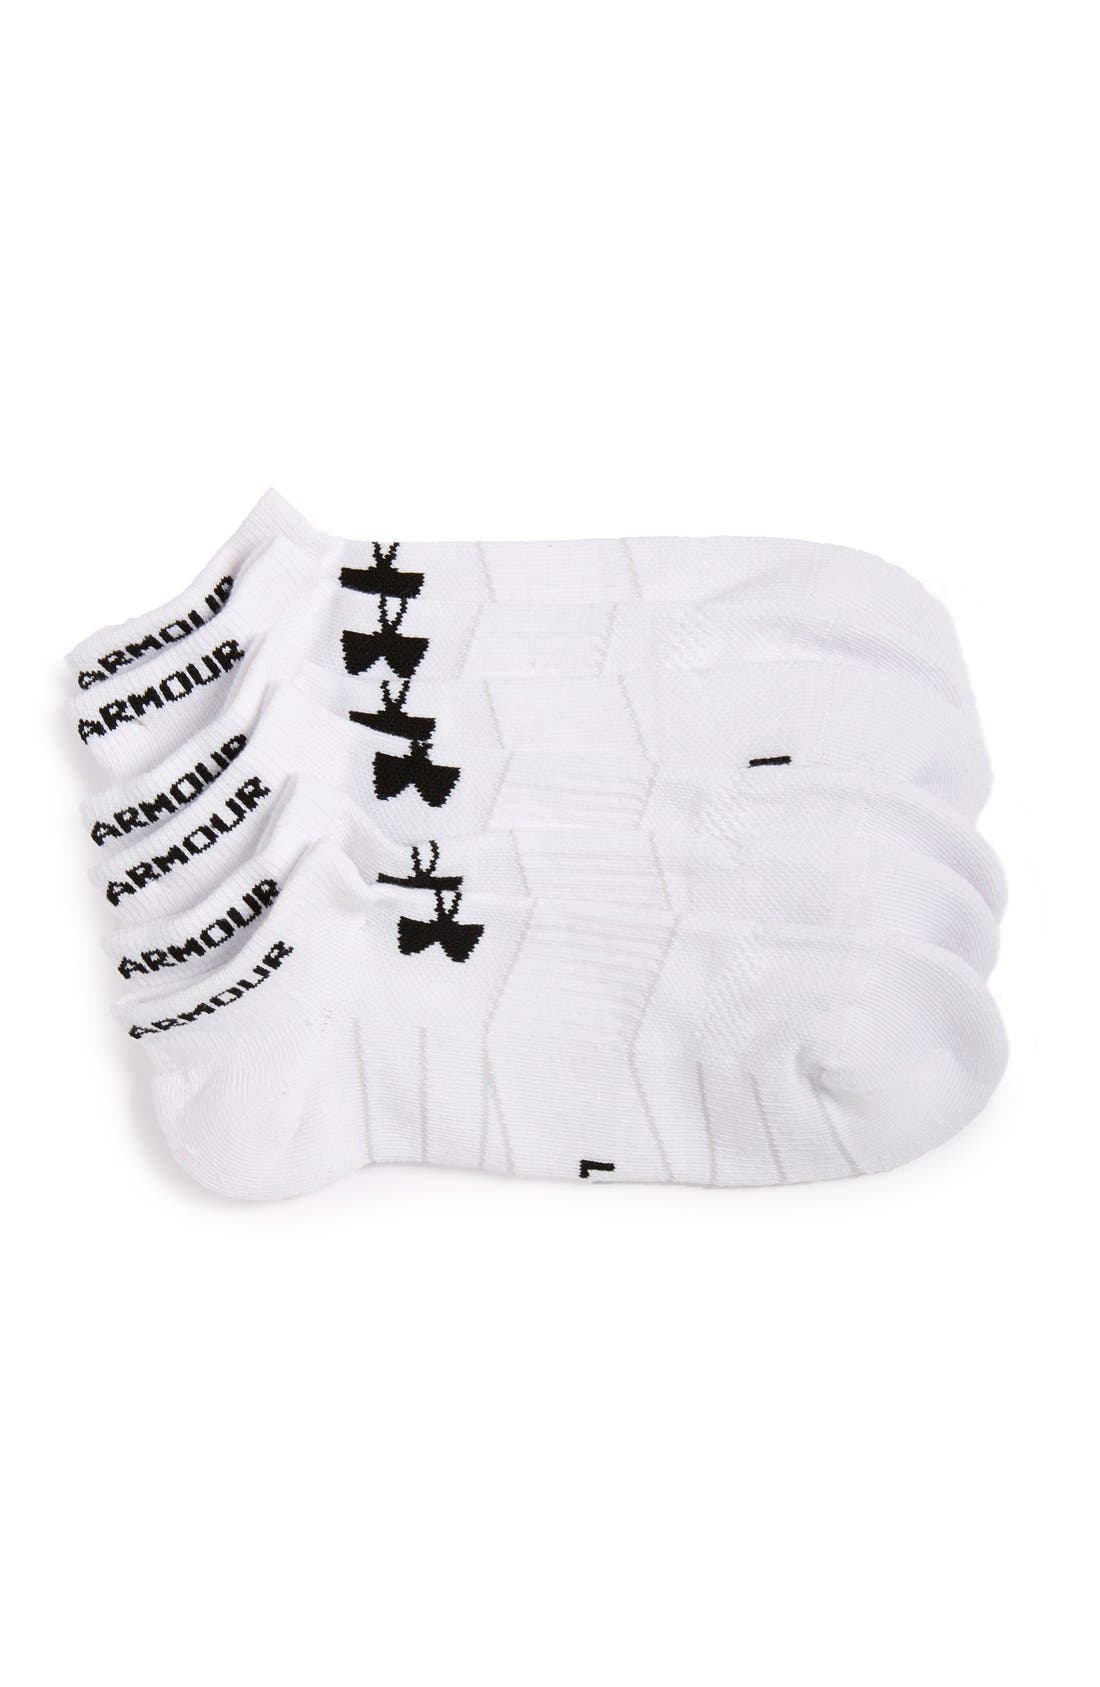 Under Armour Elevated Performance 3-Pack No-Show Socks